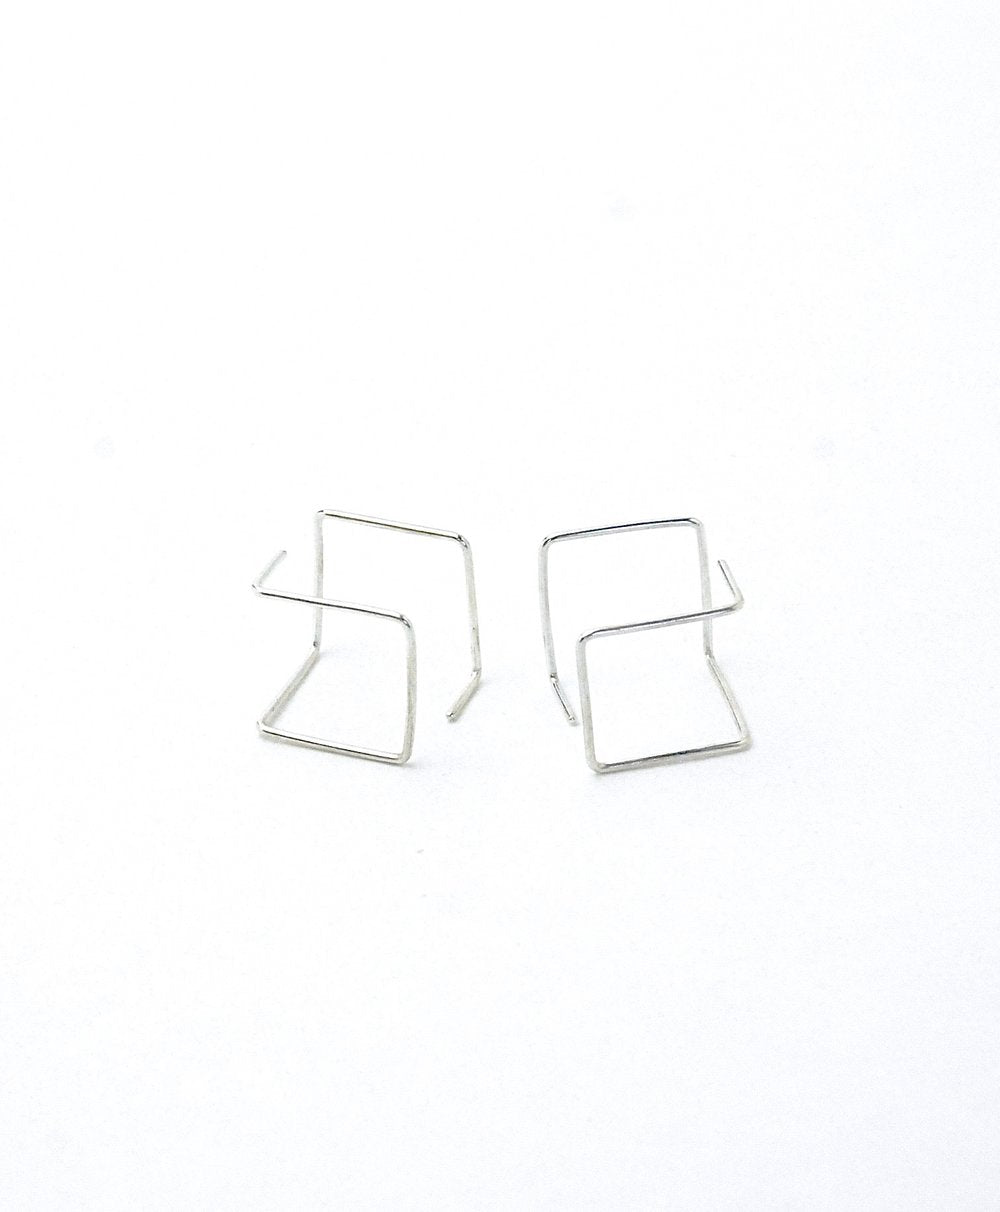 Azenya Burdett Cube Earrings